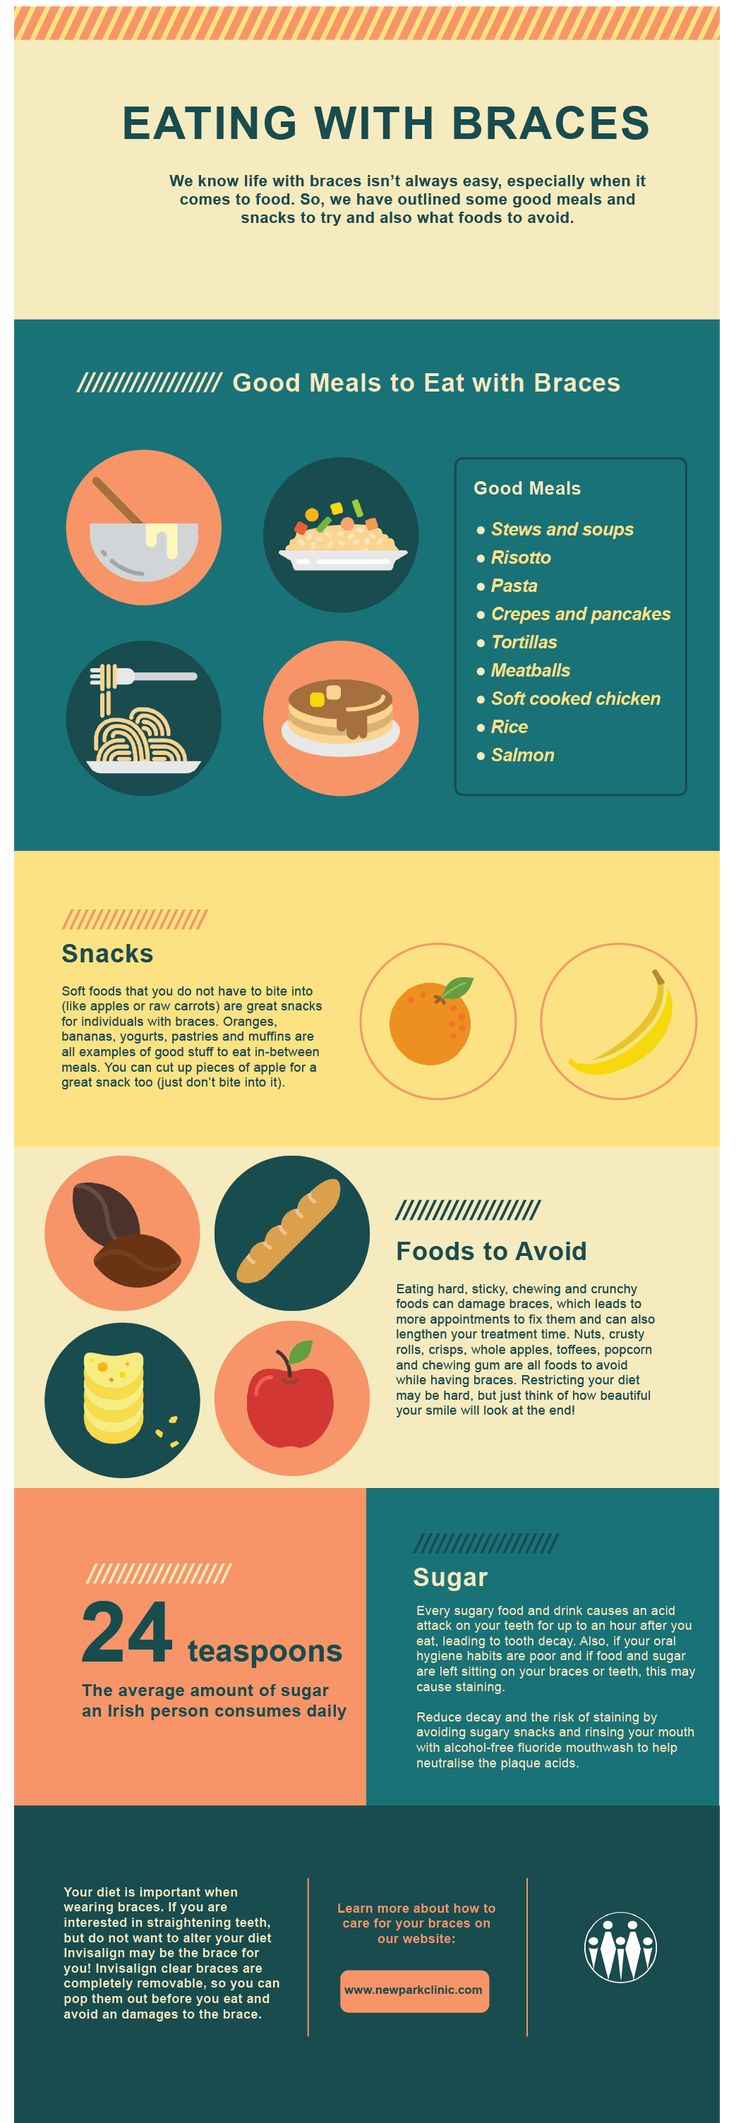 Eating with braces what foods are good and what foods to